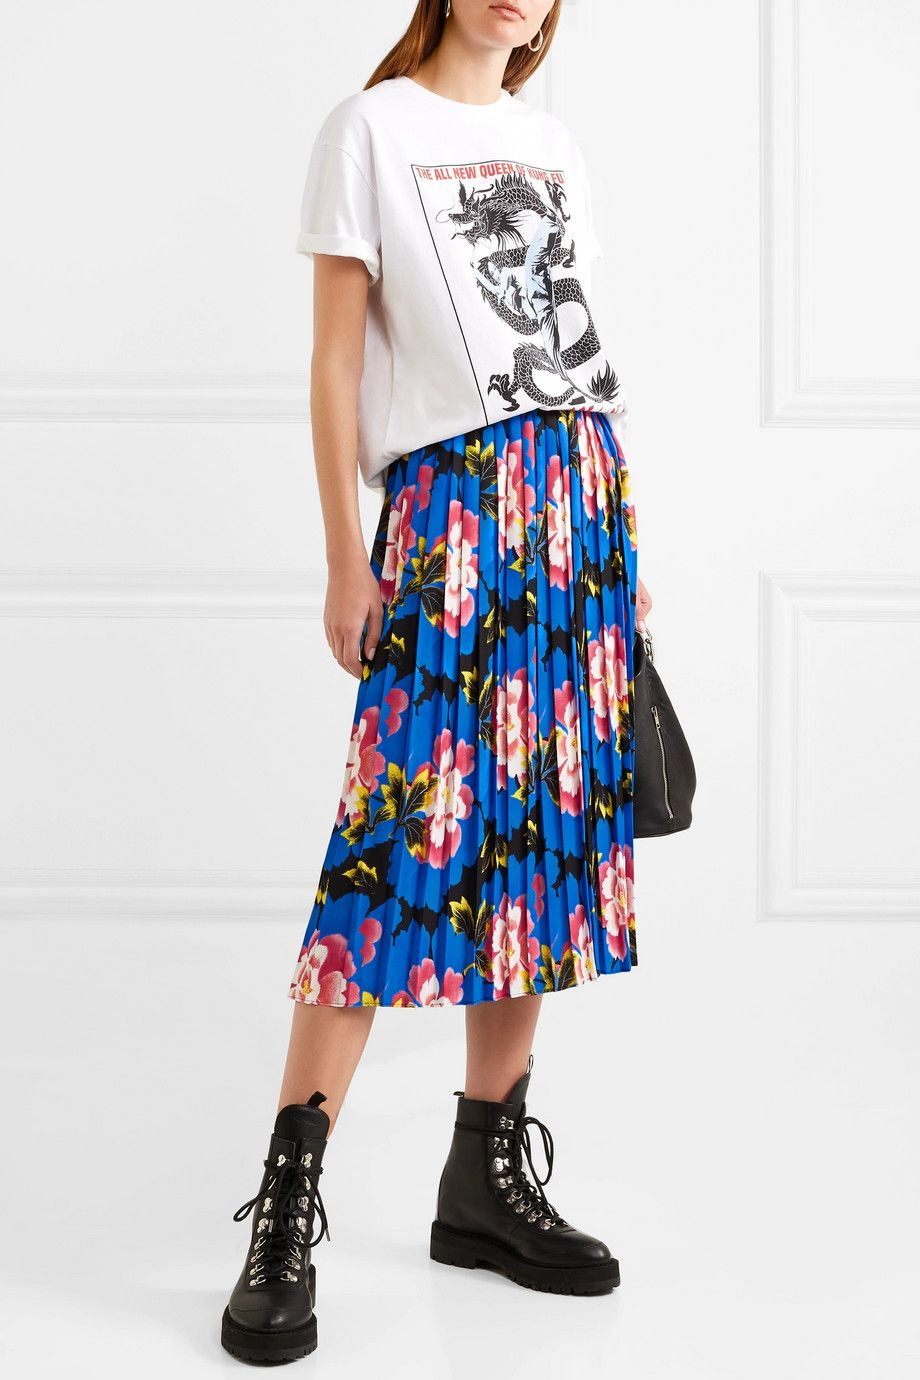 shop-kenzo-pleated-floral-print-midi-skirt